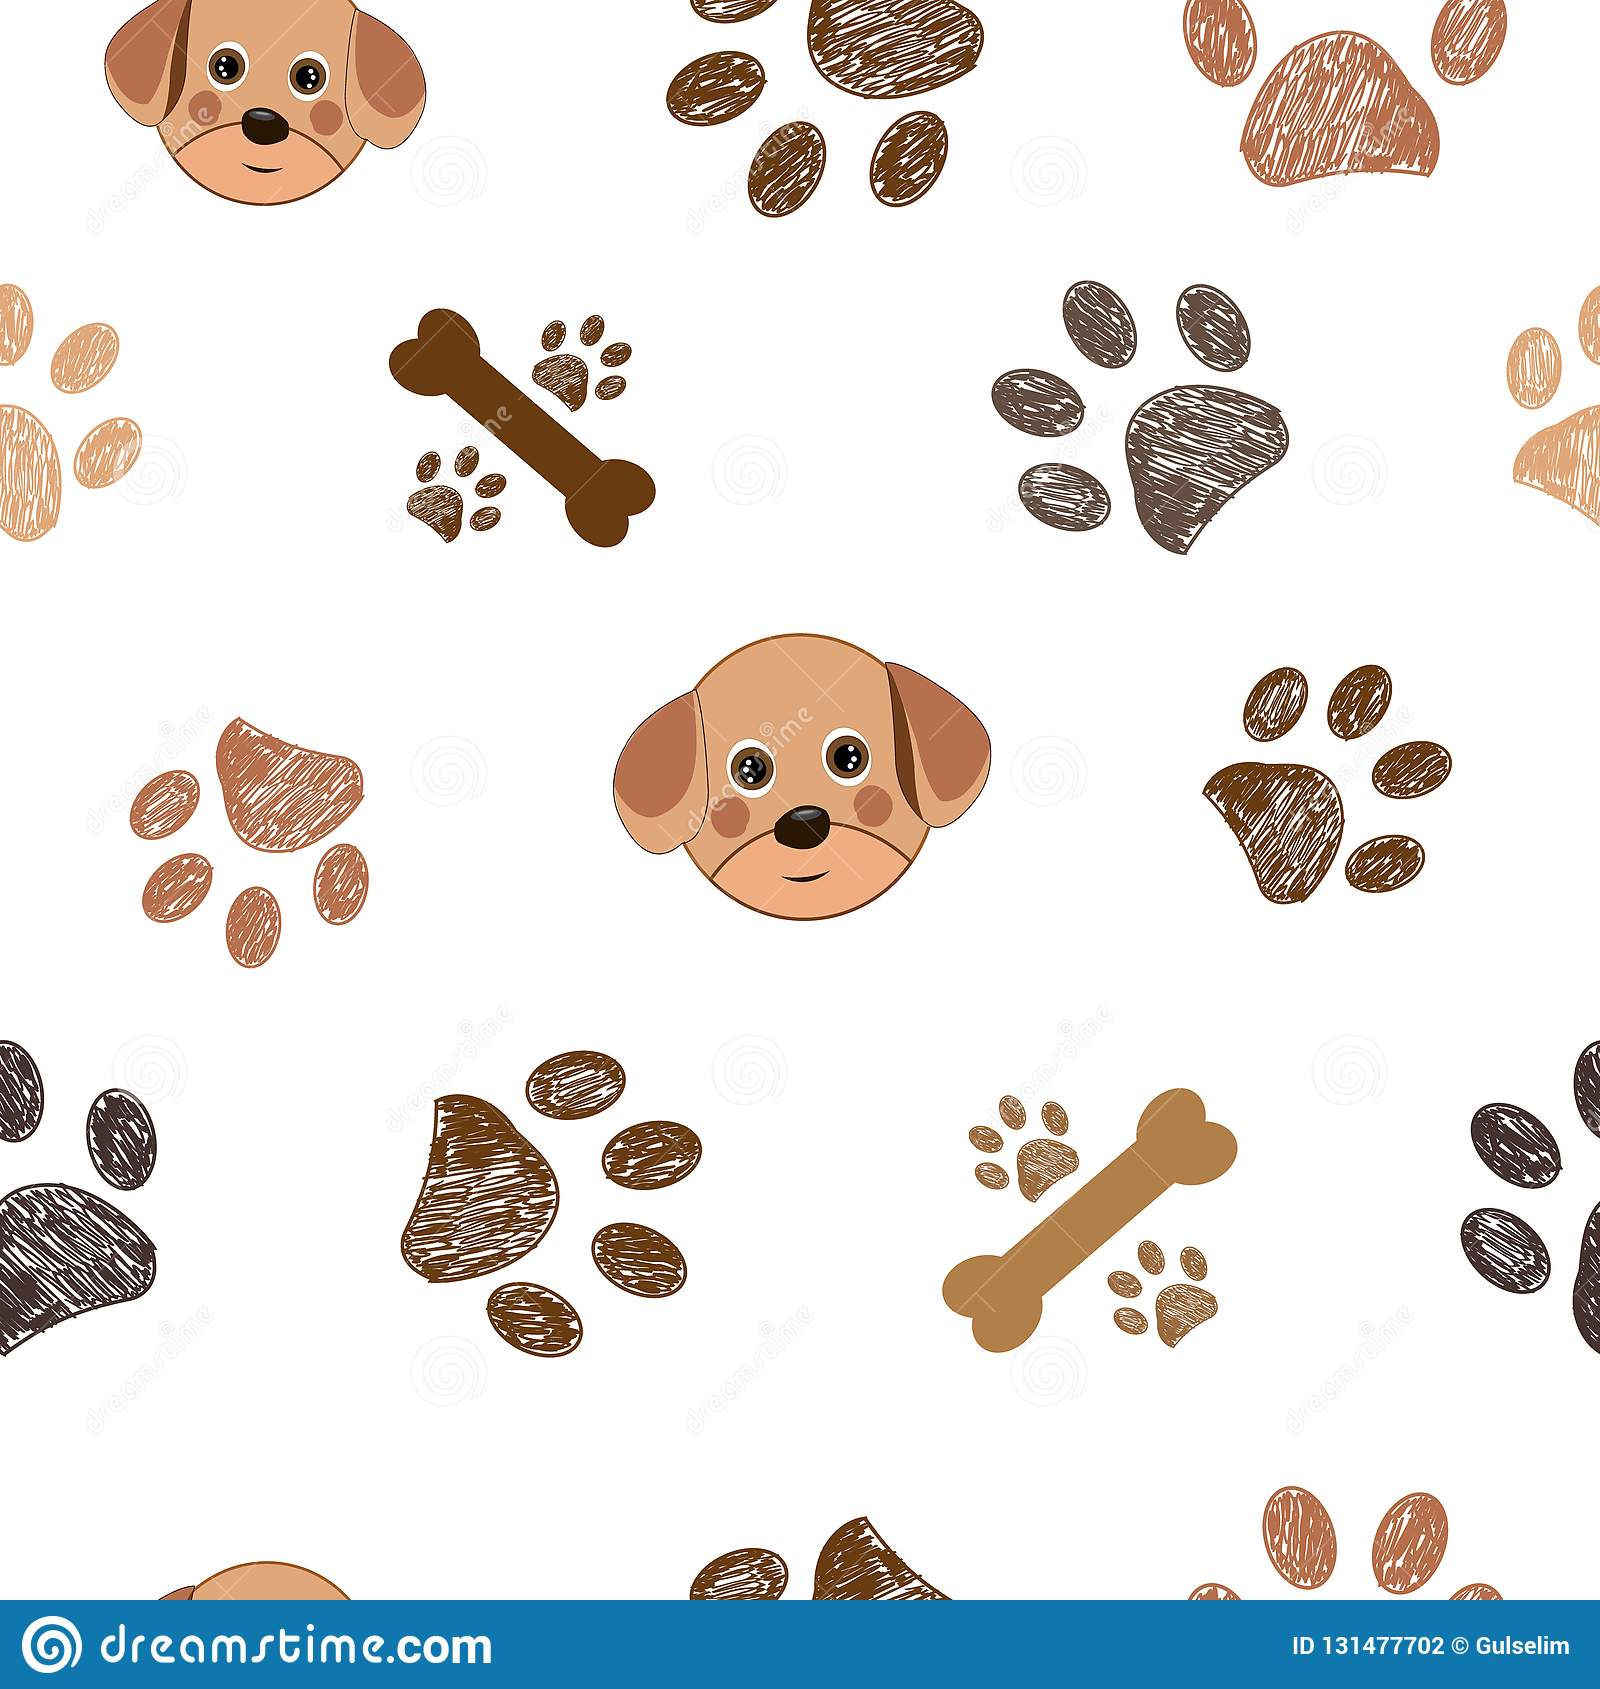 efbcefa8aab5 Dog And Doodle Paw Prints And Bones Paws Pattern Stock Vector ...